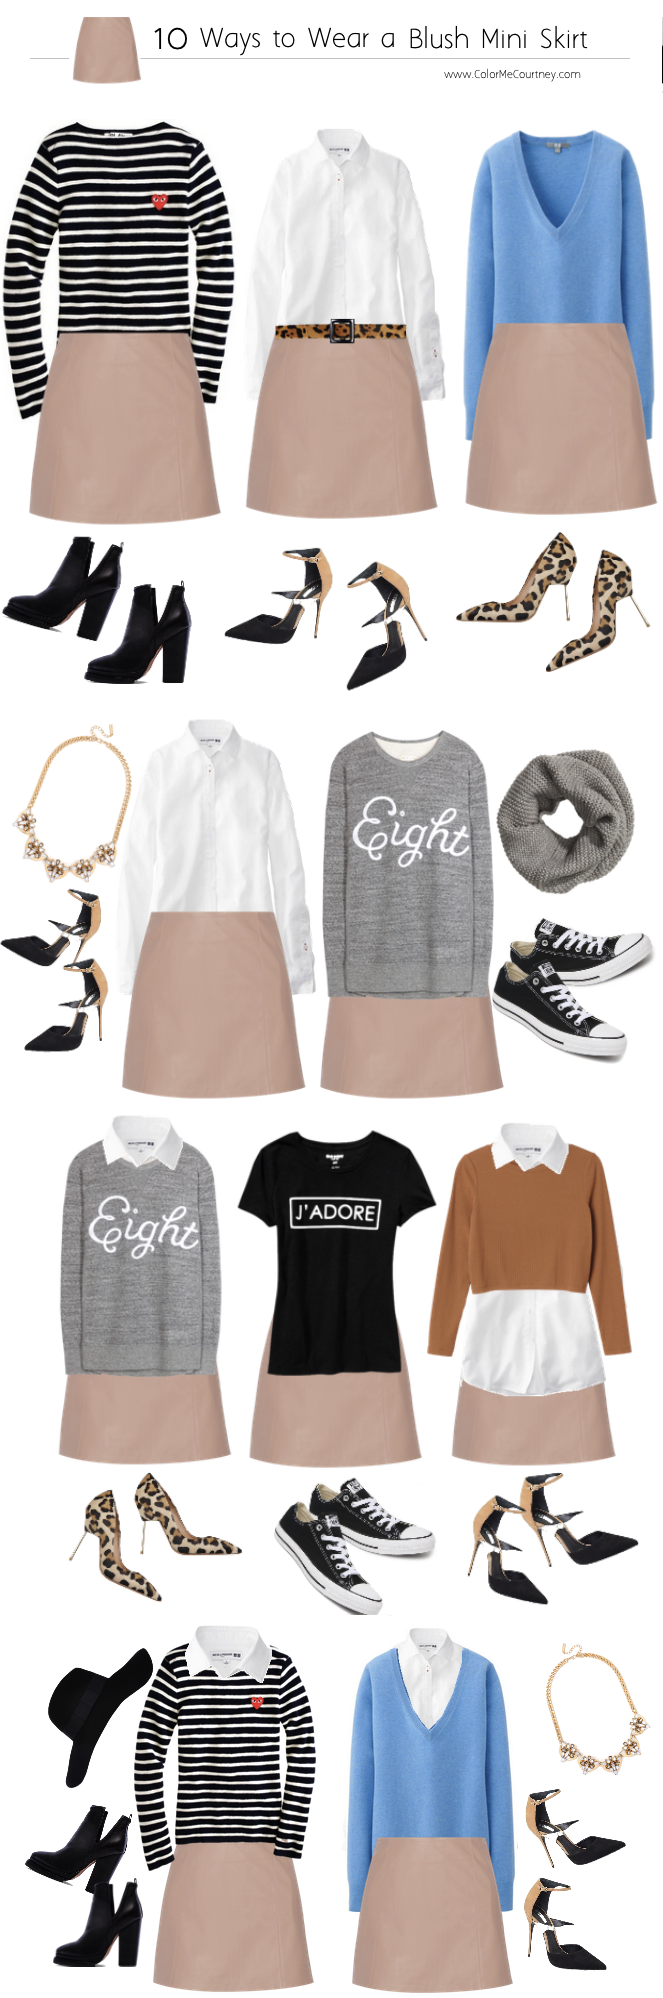 100 outfits create 100 outfits from 10 pieces 10 pieces 100 outfits what to wear for fall fall style guide fall shopping guide what to buy fro fall fall fashion fall fashion guide how to dress for fall what to wear for fall fall fashion guide how to wear a leather mini skirt 10 ways to wear a leather mini skirt